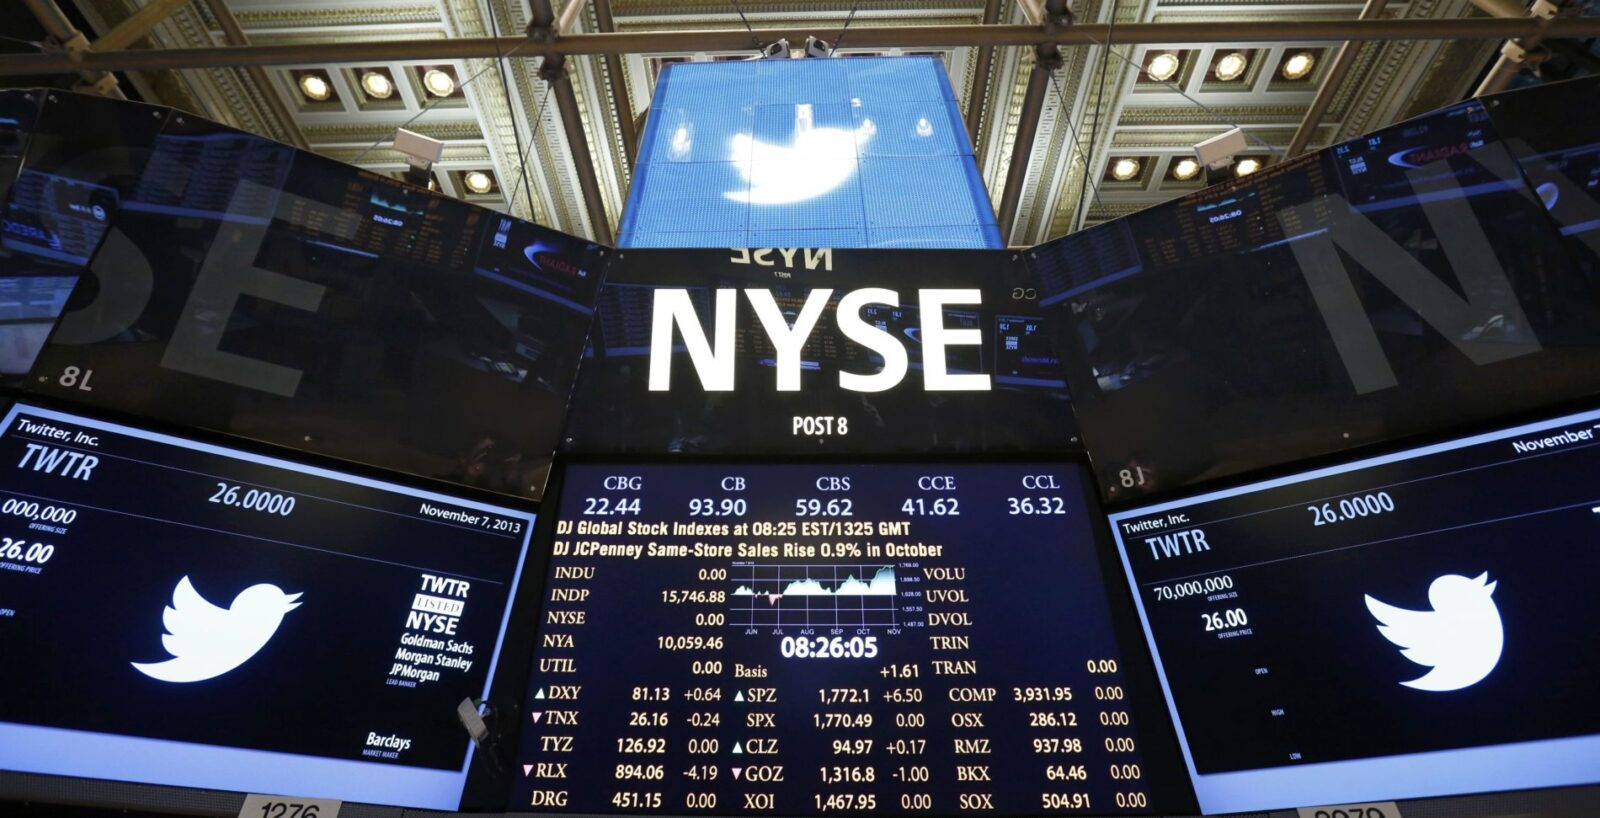 Twitter IPO? There Has Got To Be a Better Way